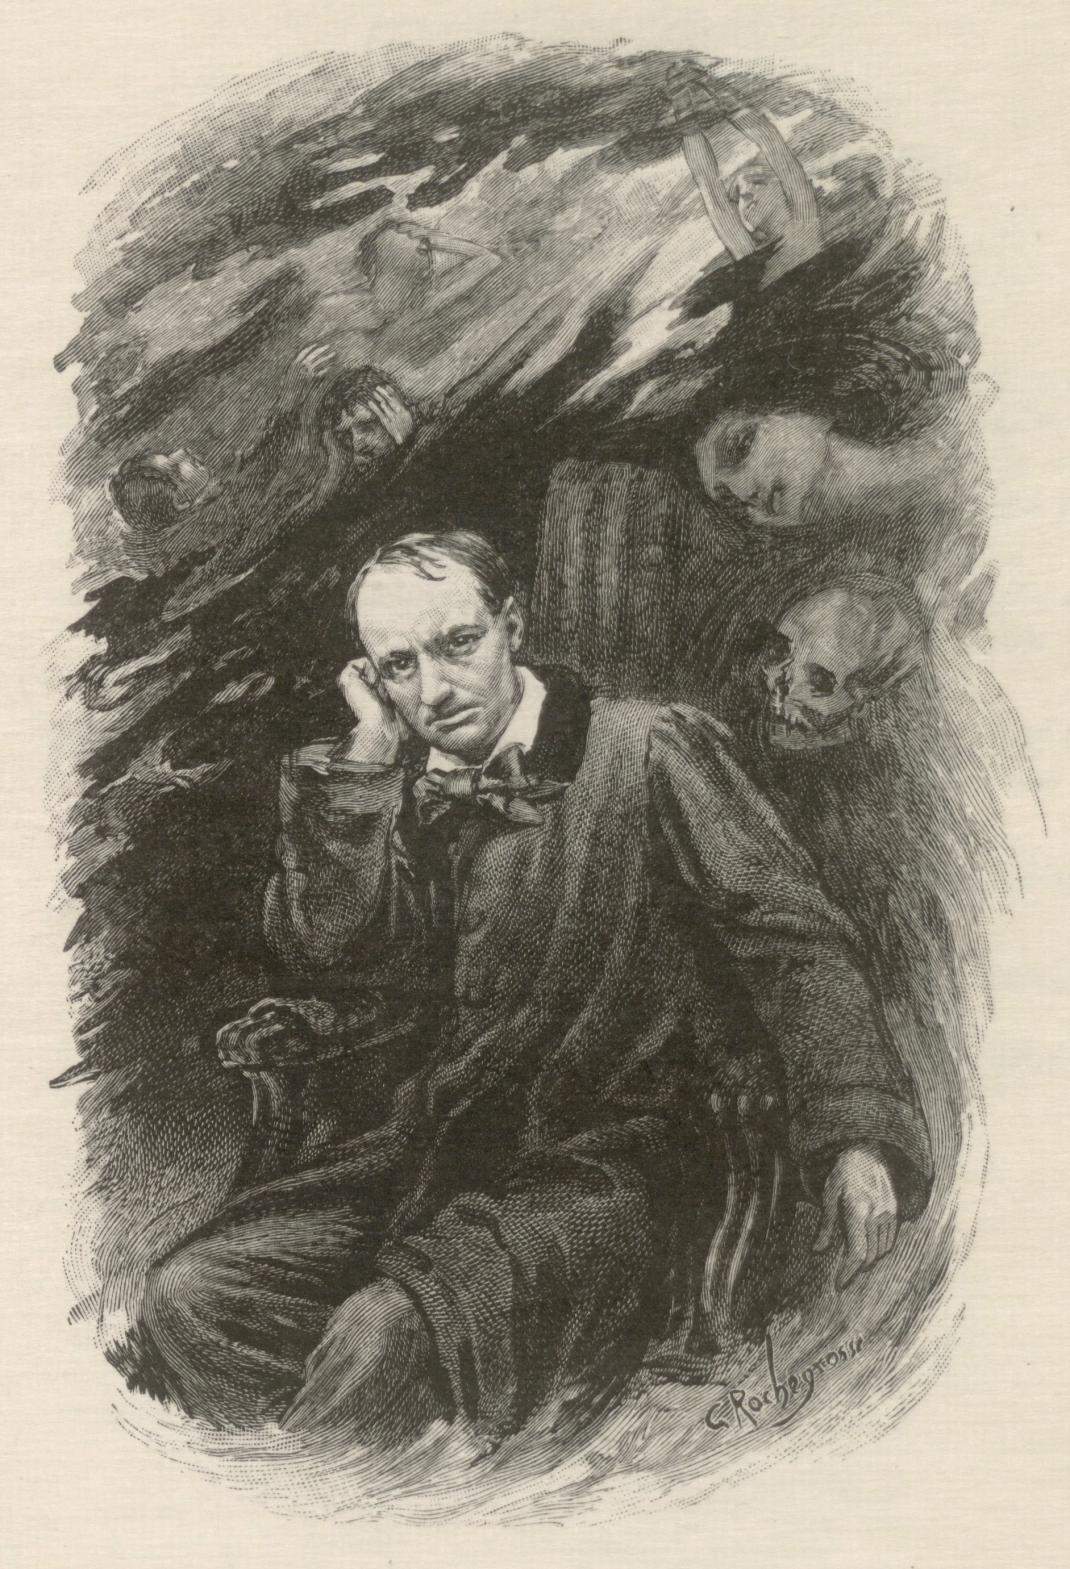 Charles_Baudelaire_by_Georges_Rochegrosse_and_Eugène_Decisy.jpg